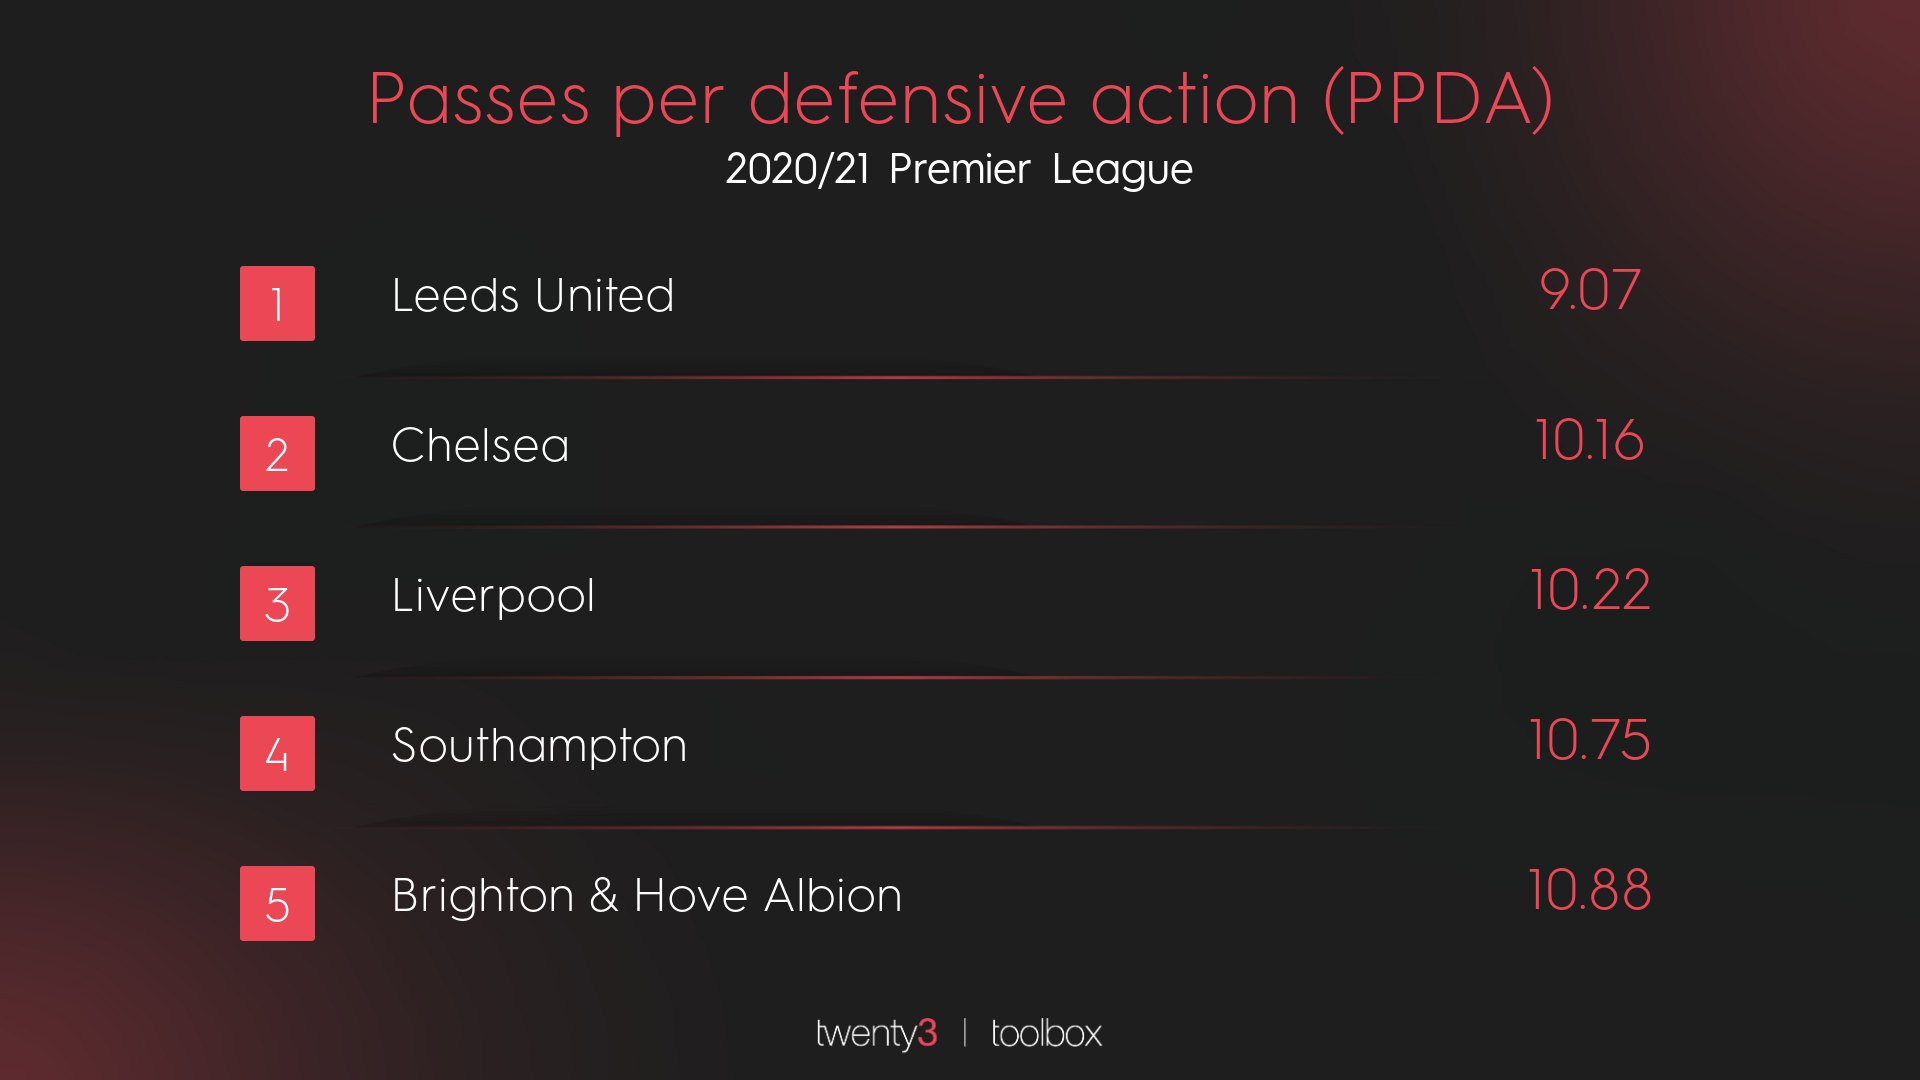 Ranking Premier League teams with the best PPDA in 2020/21